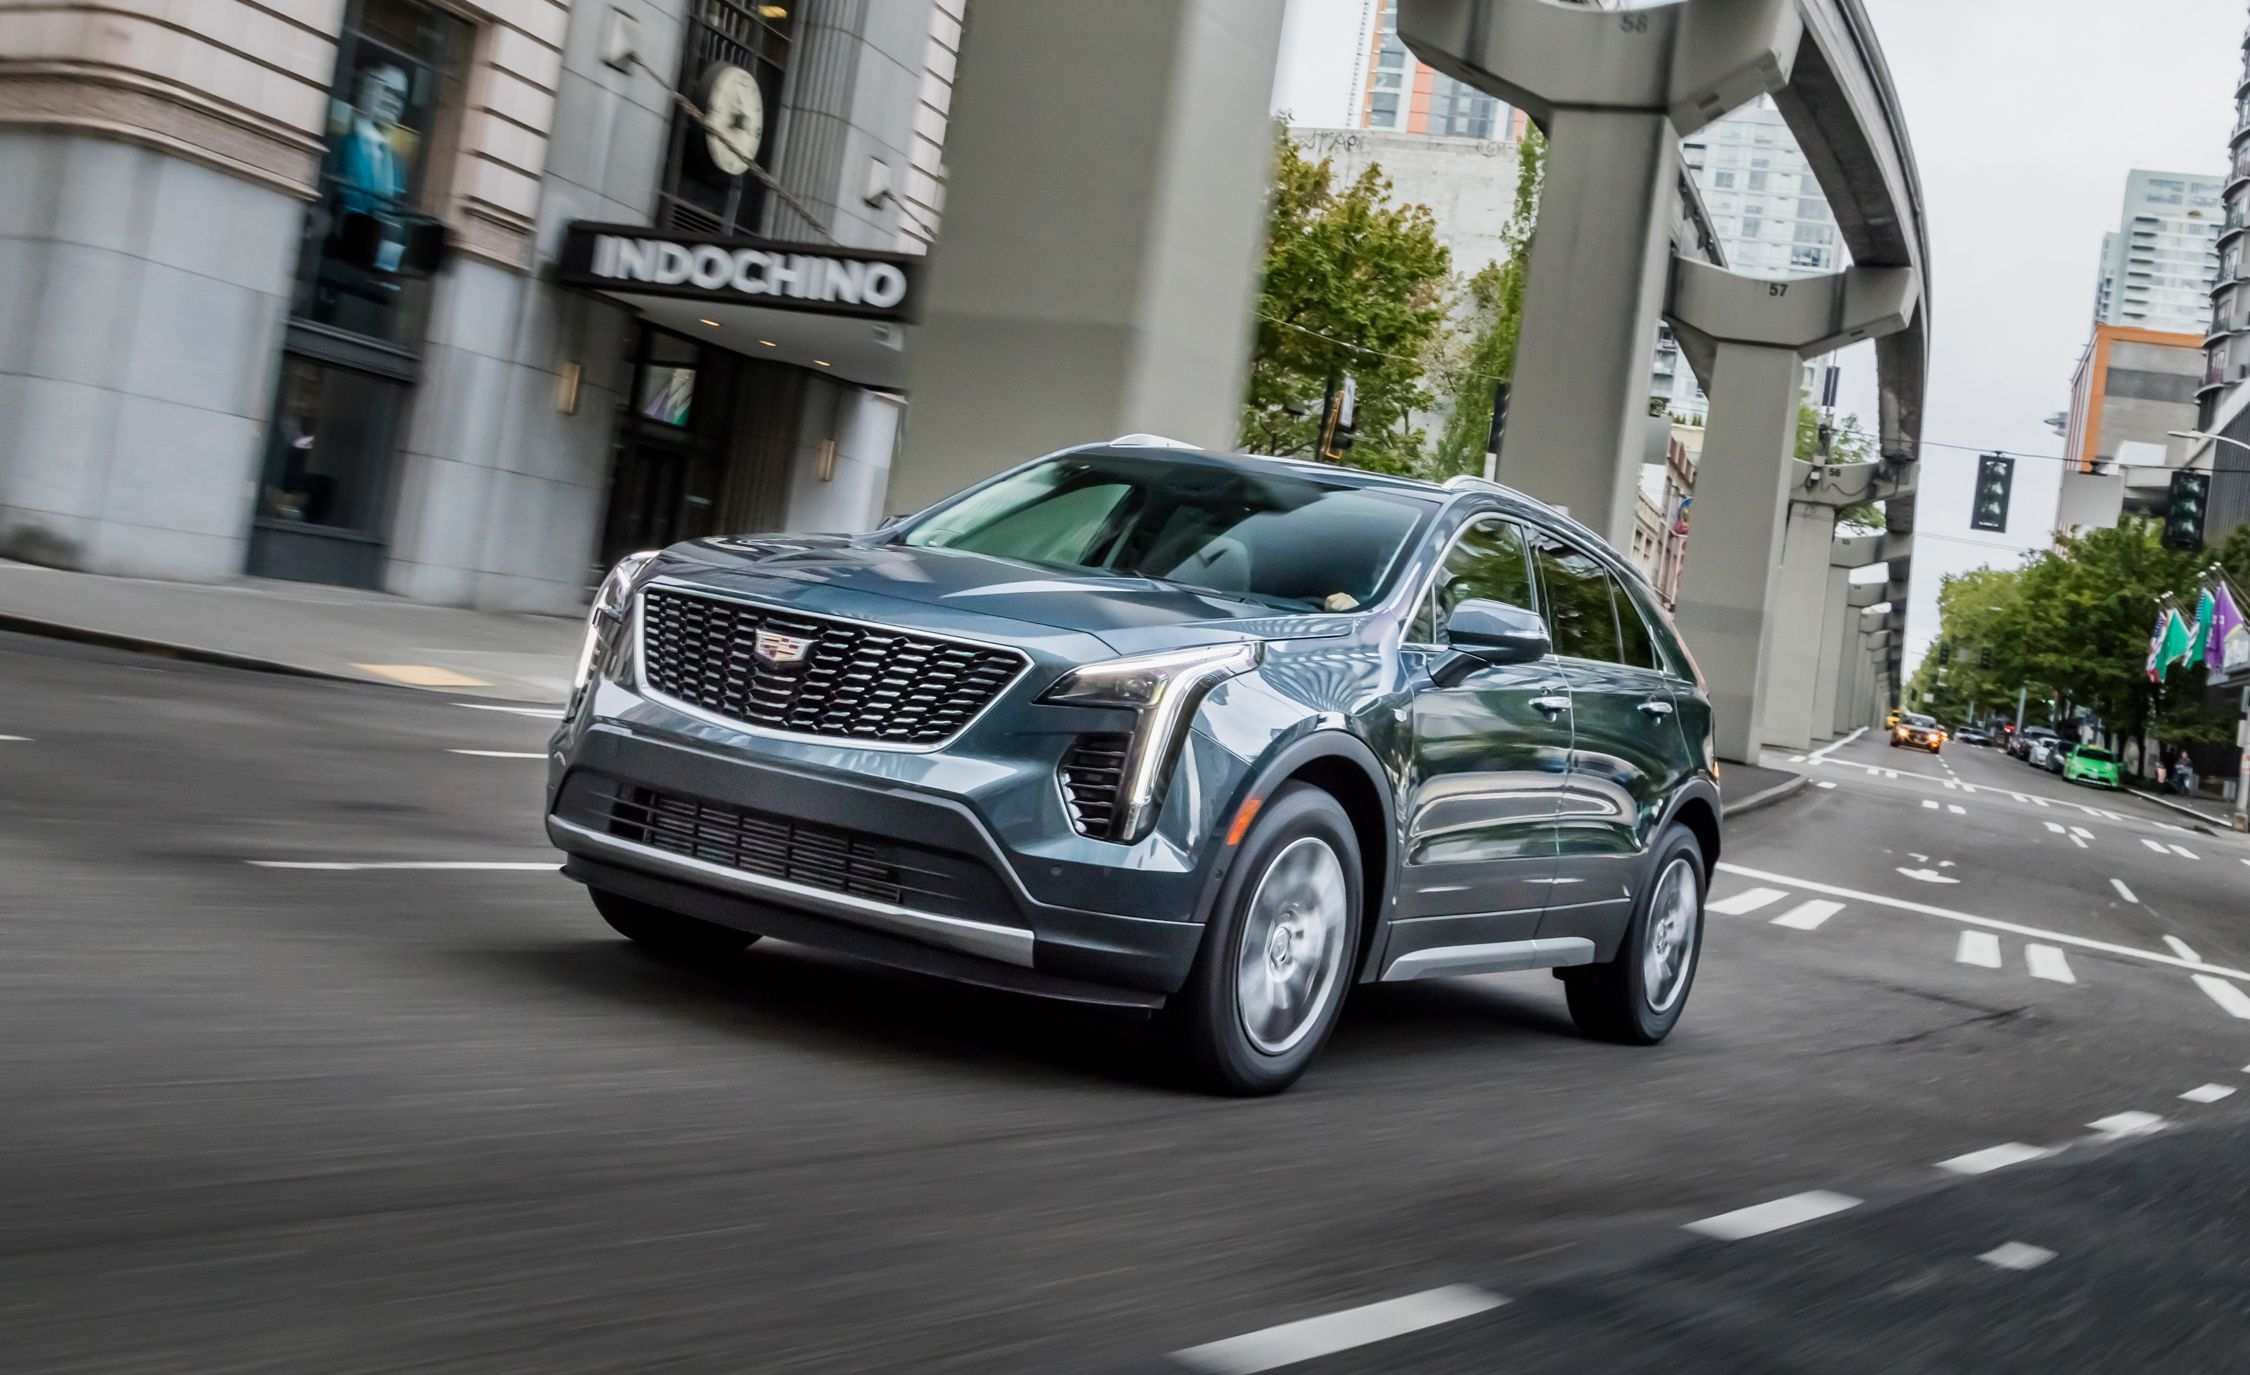 56 Best Review 2019 Cadillac St4 Configurations with 2019 Cadillac St4